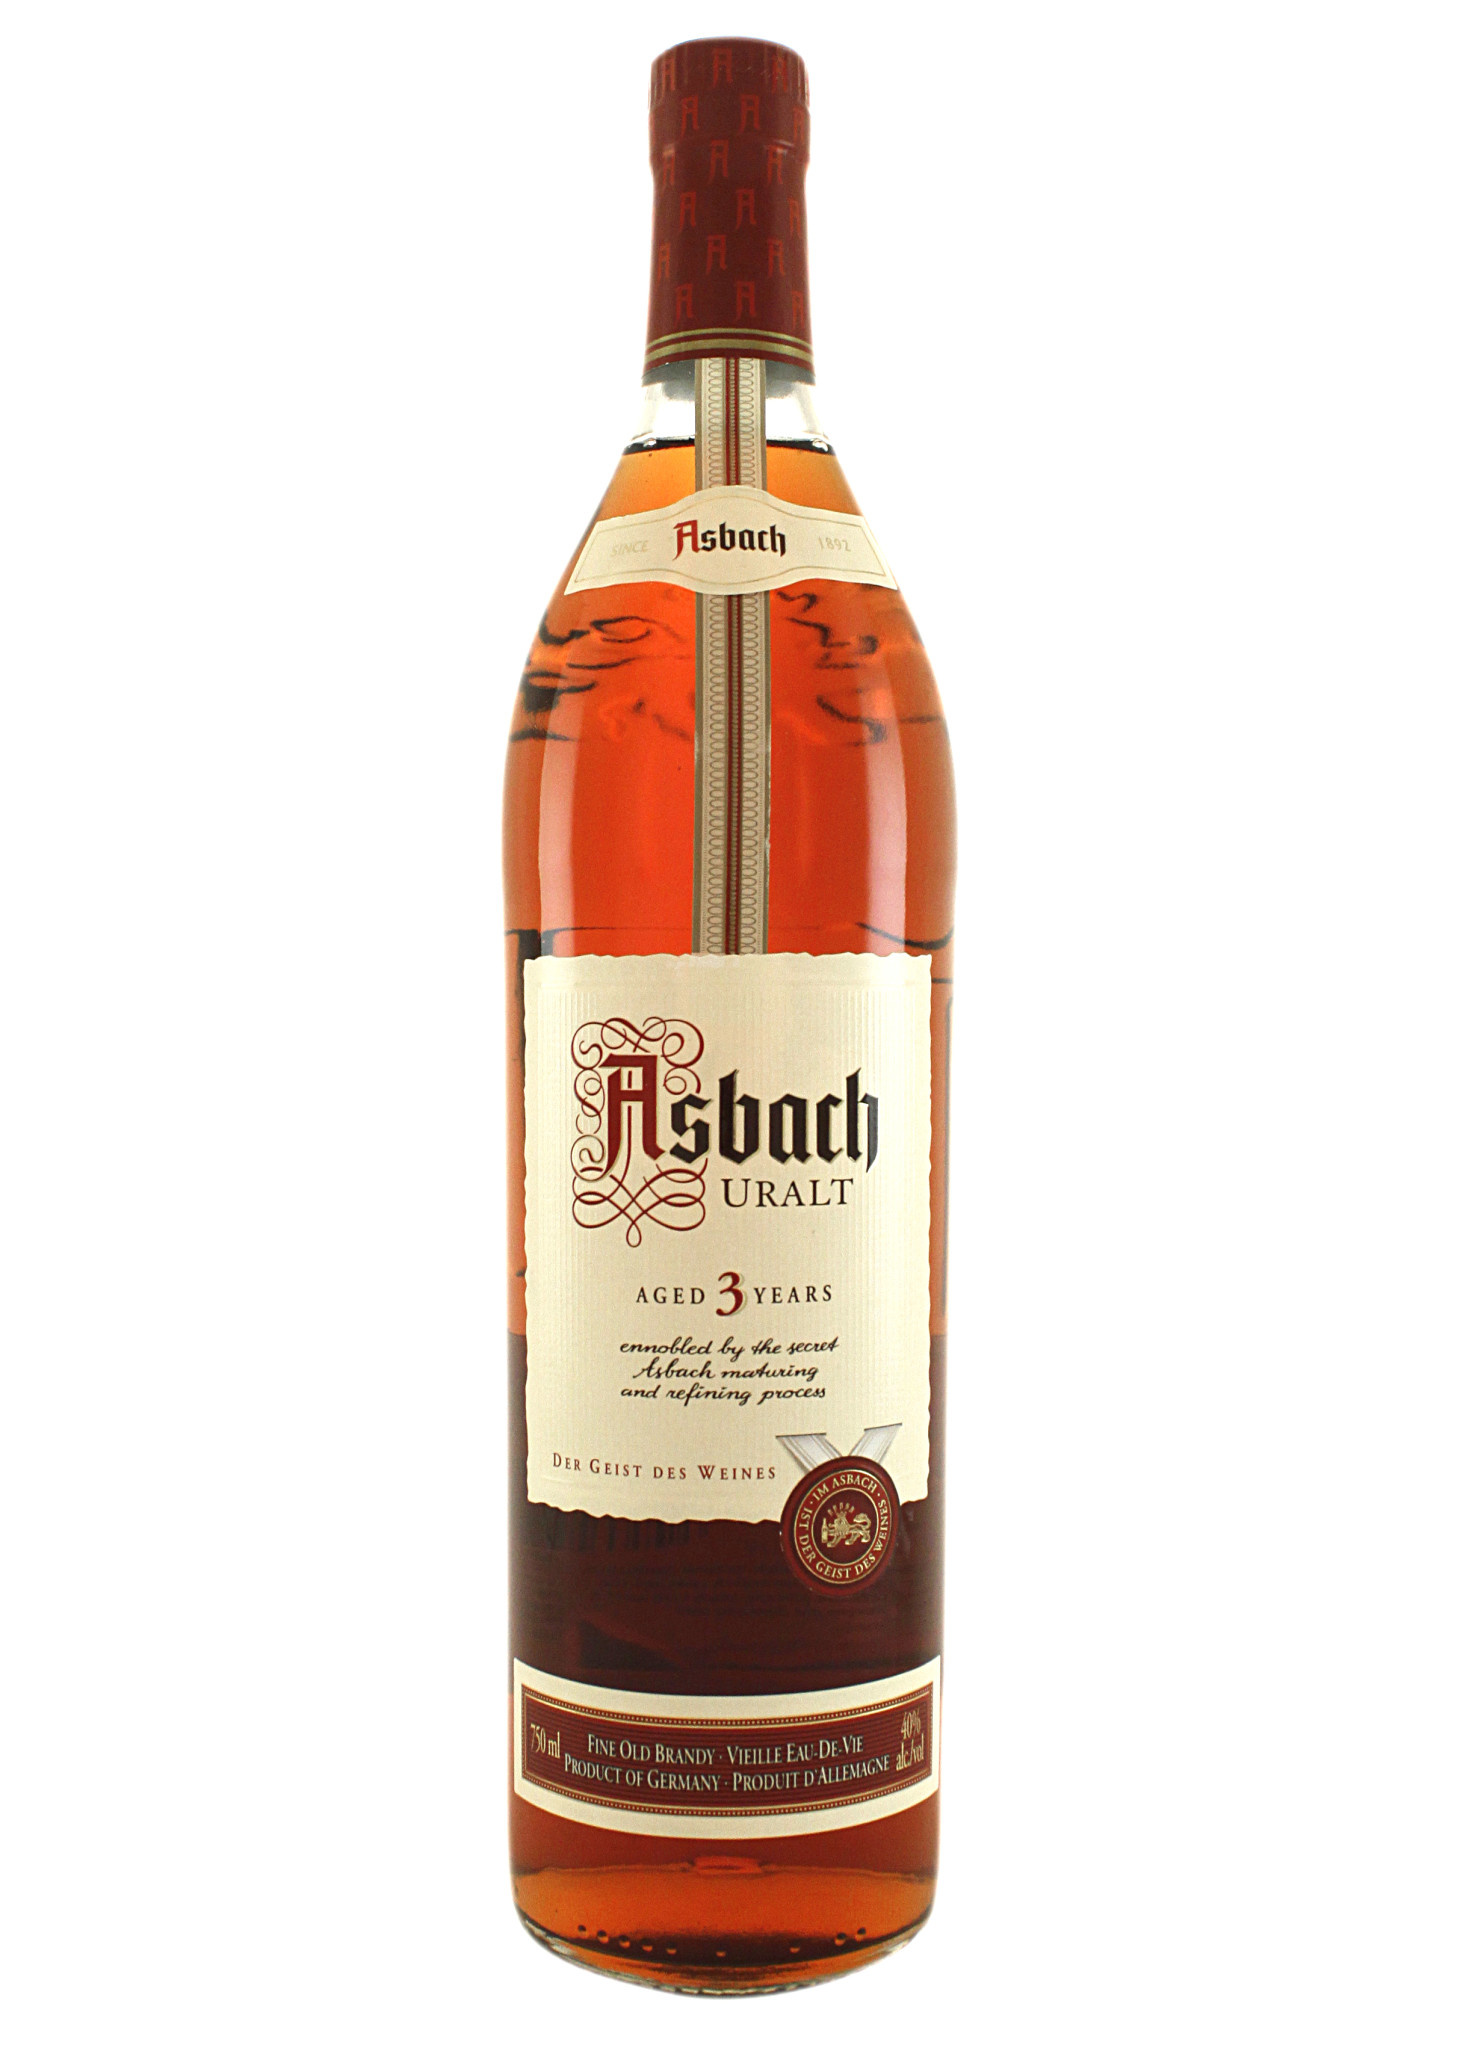 Asbach Uralt Brandy Aged 3 Years, Germany